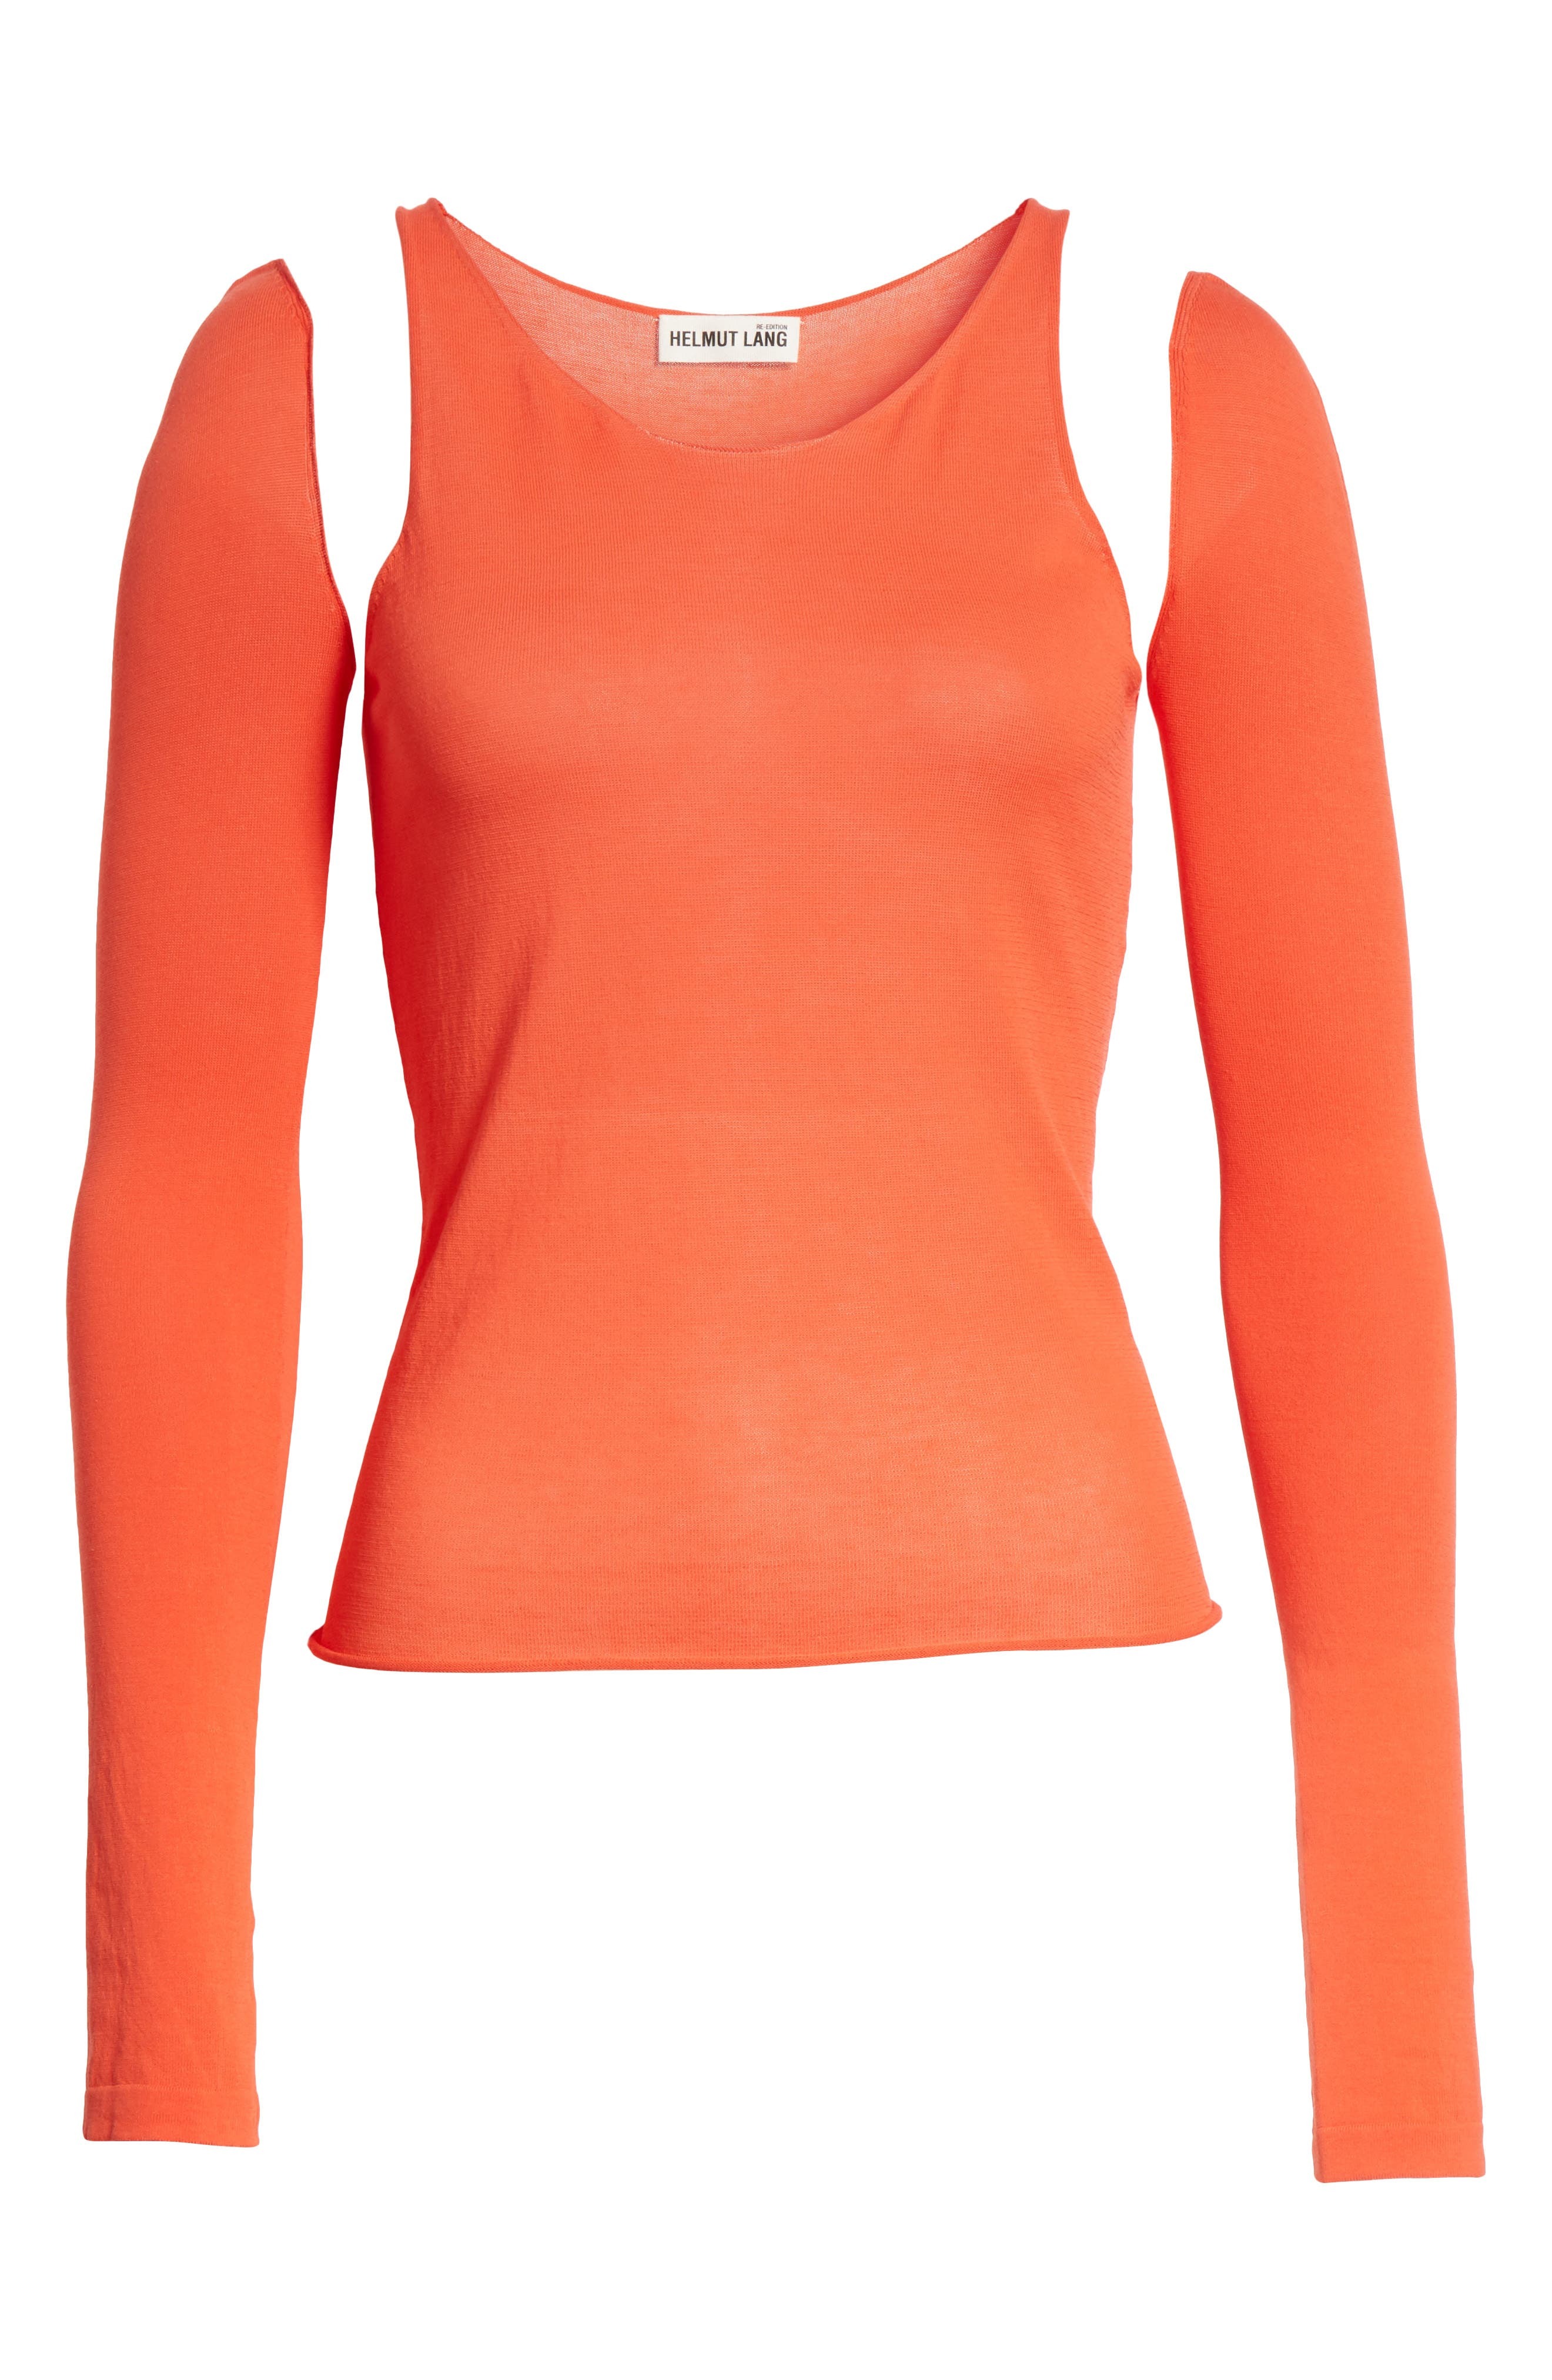 Ribbed Tank Top with Long Sleeves,                             Alternate thumbnail 6, color,                             808